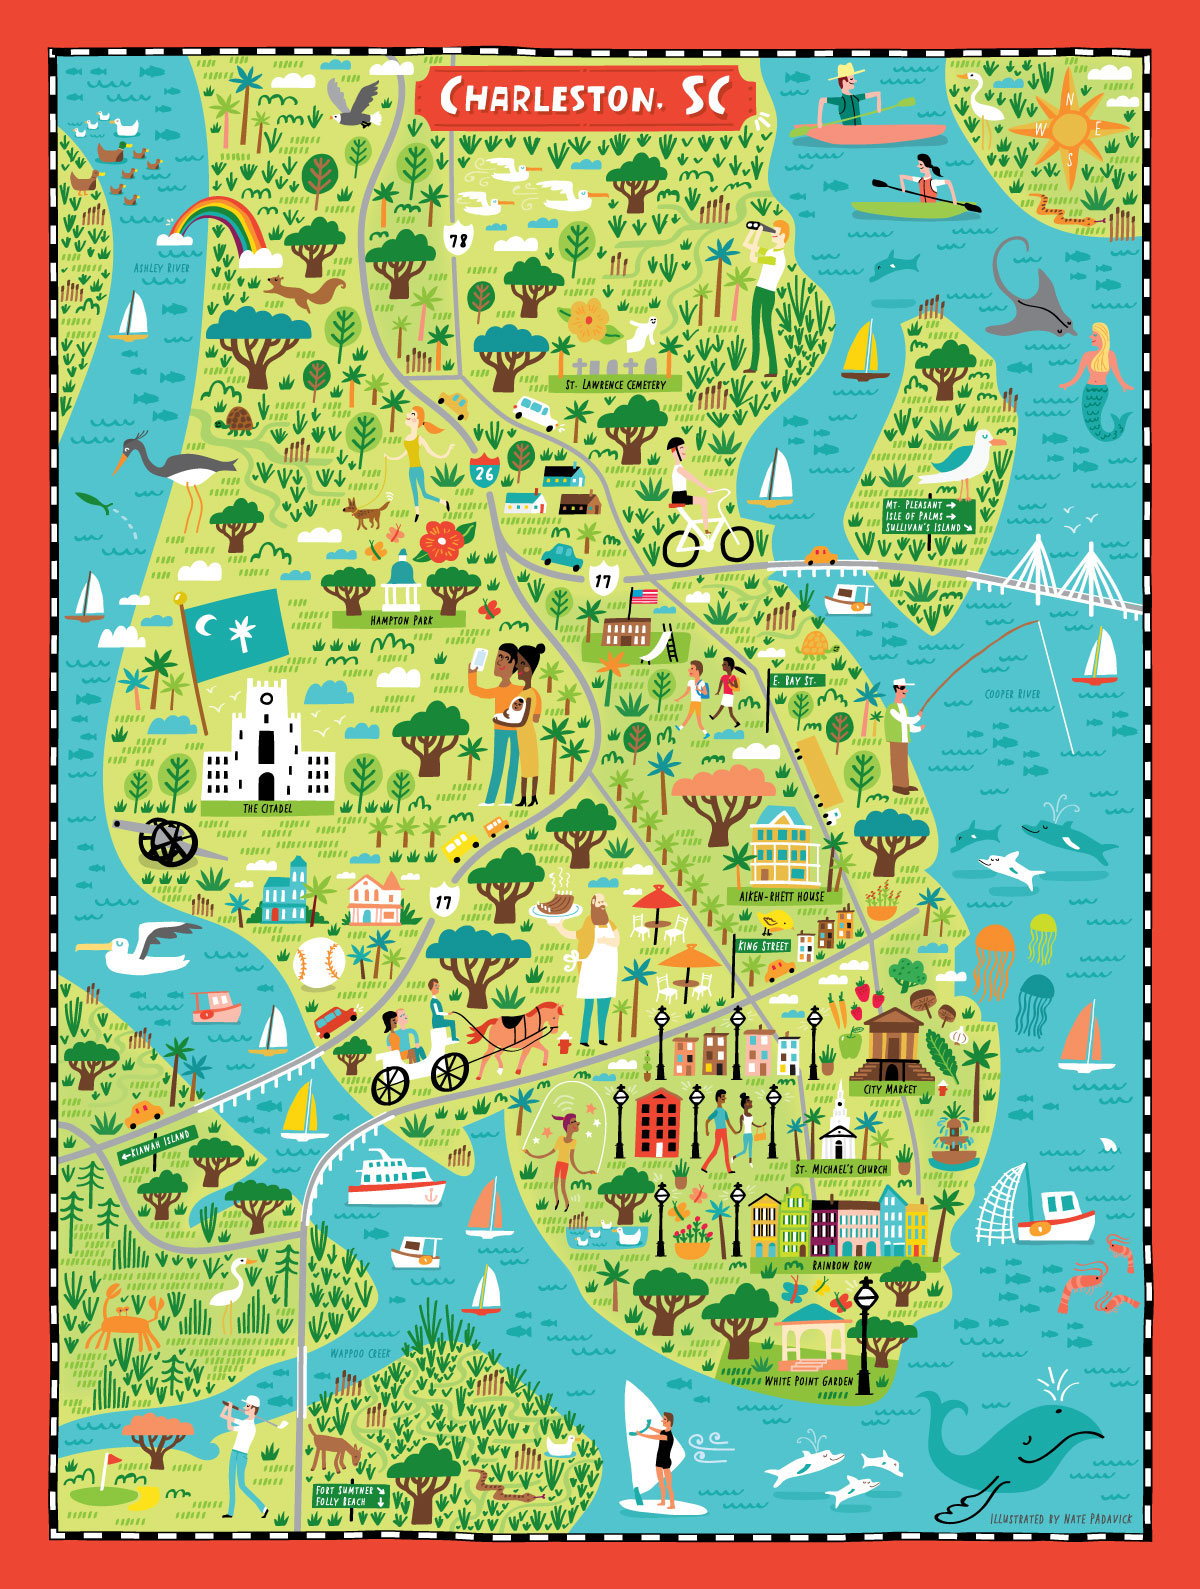 map of st augustine florida with Illustrated Maps Of Atlanta Savannah on Beach  bing Beauties as well Ormo108 furthermore Do You Live In A Flooding Evacuation Zone furthermore Hamiltonupchurch besides 03.